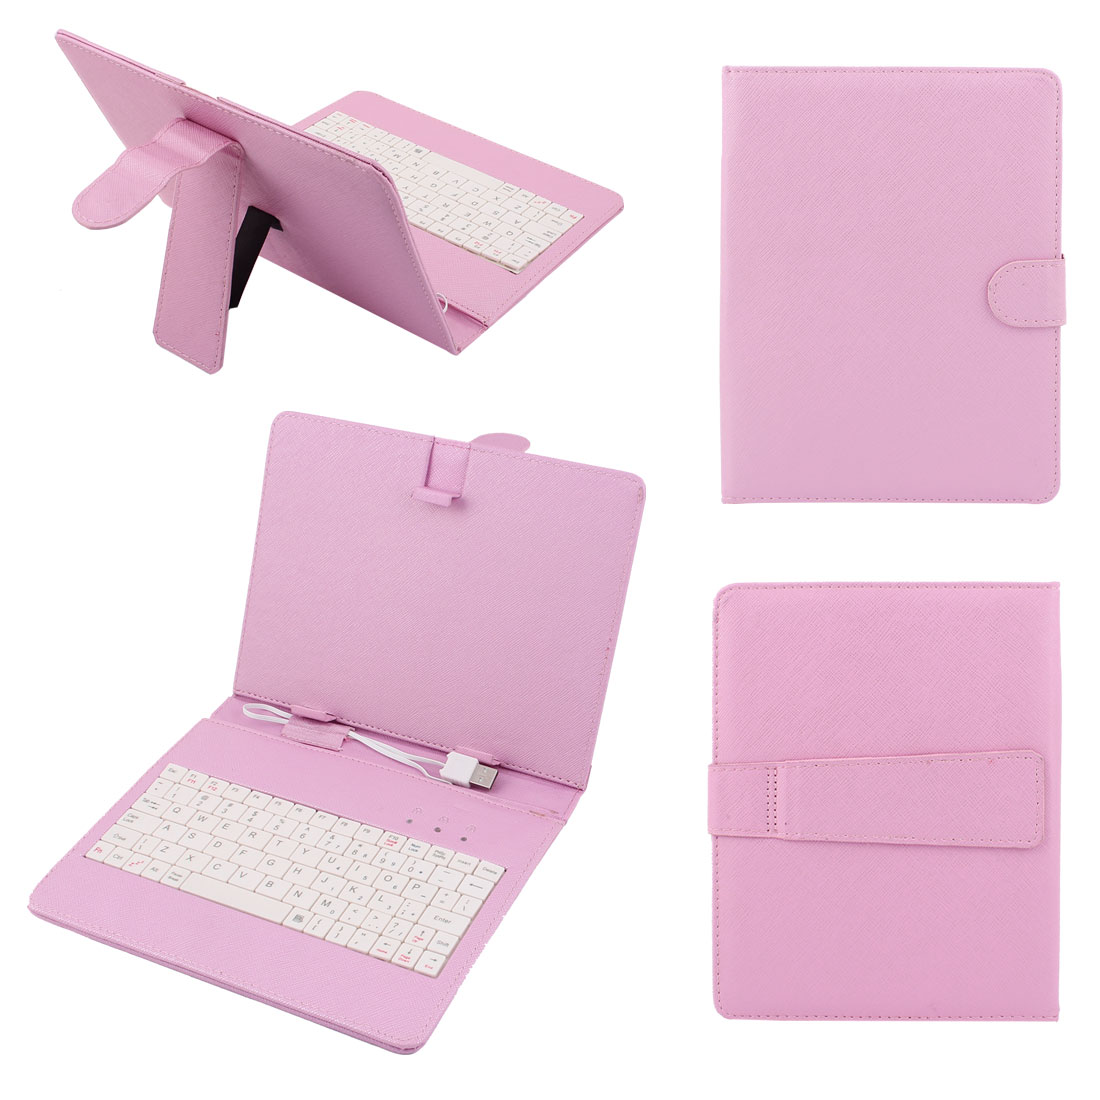 "Protective Folding PU Leather Flip Folio Stand USB Keyboard Case Cover w OTG Cable for Universal 8"" Tablet PC eBook Pink"